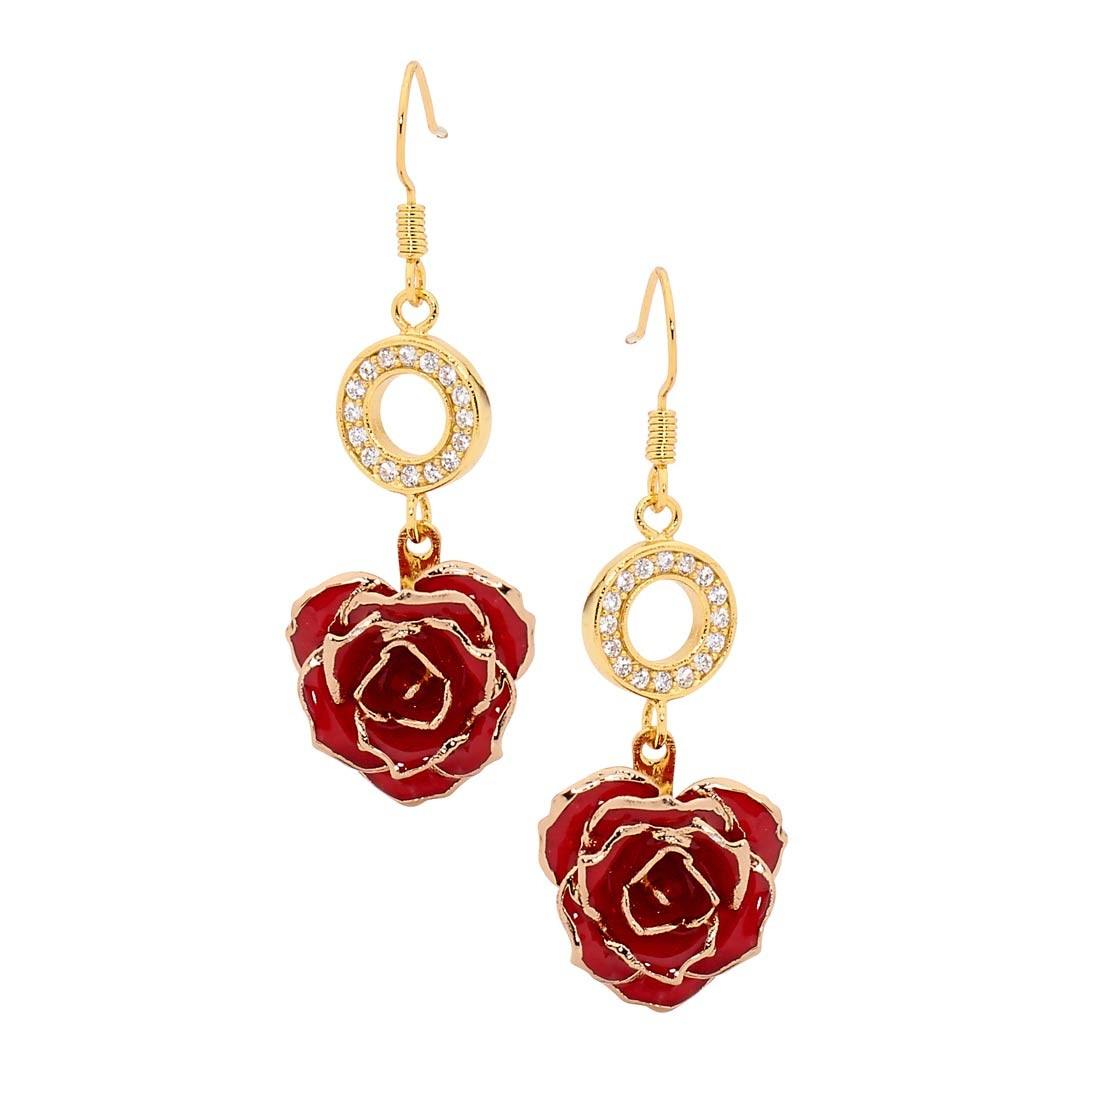 Red Rose Foundation Australia Home: Red Matched Set In 24K Gold Heart Theme. Glazed Rose